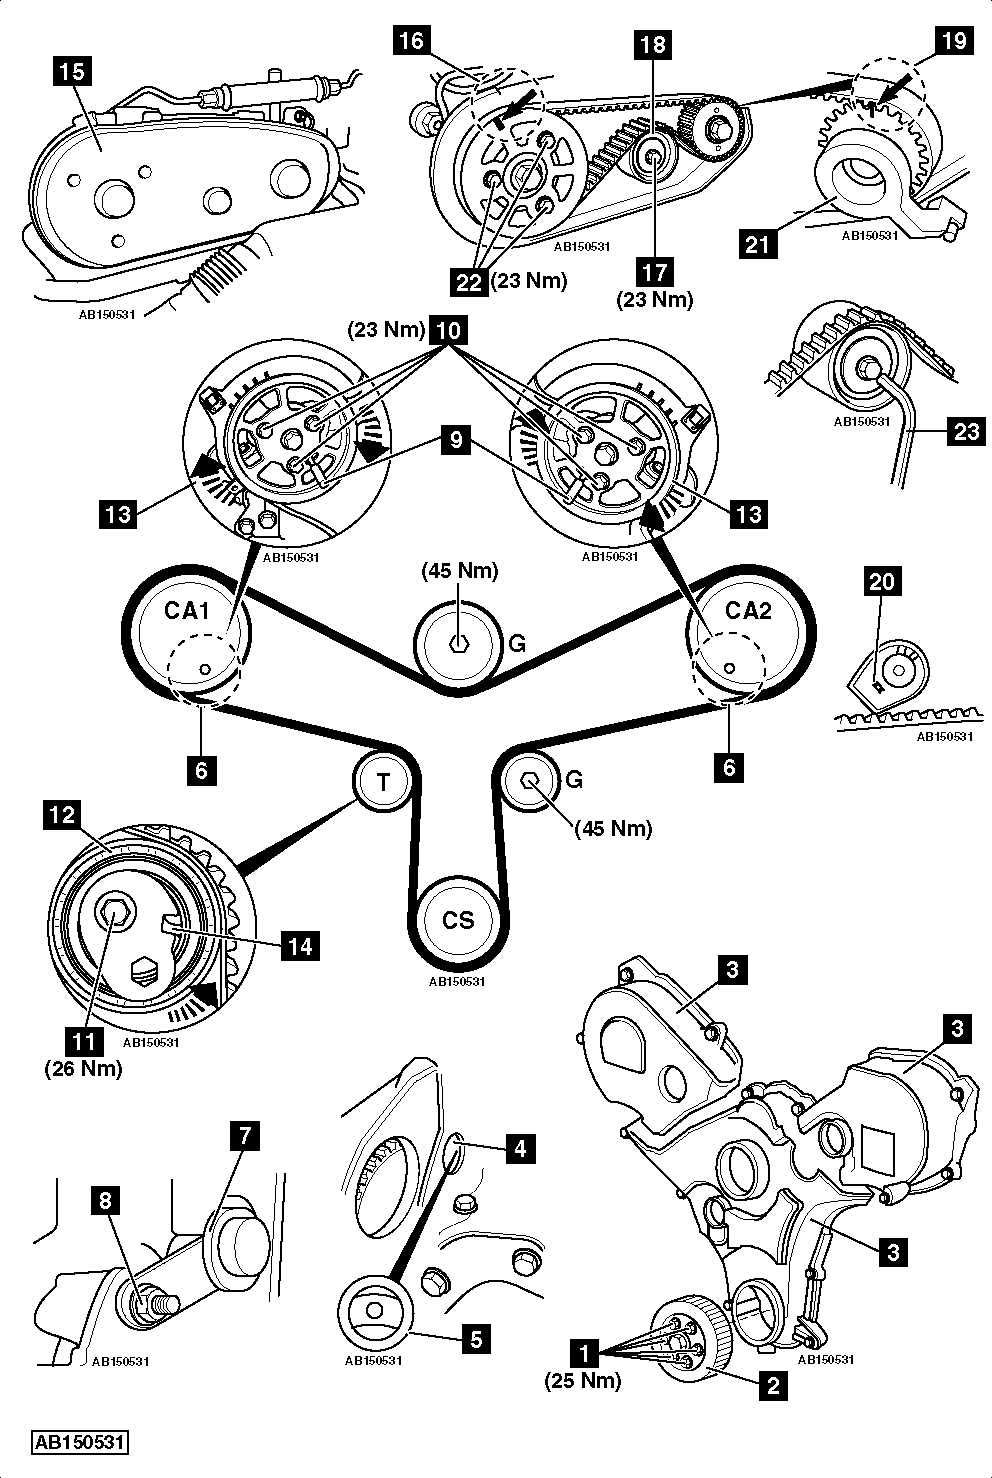 2001 Civic Knock Sensor Location in addition 1991 Acura Integra Wiring Diagram besides Diagram Besides 2003 Nissan Altima Idle Air Control Valve Location moreover How To Replace Timing Belt On A 1993 Dodge Ram Van B350 in addition How To Bleed Hydraulic Clutch 2012 Hyundai Accent. on 1994 acura nsx